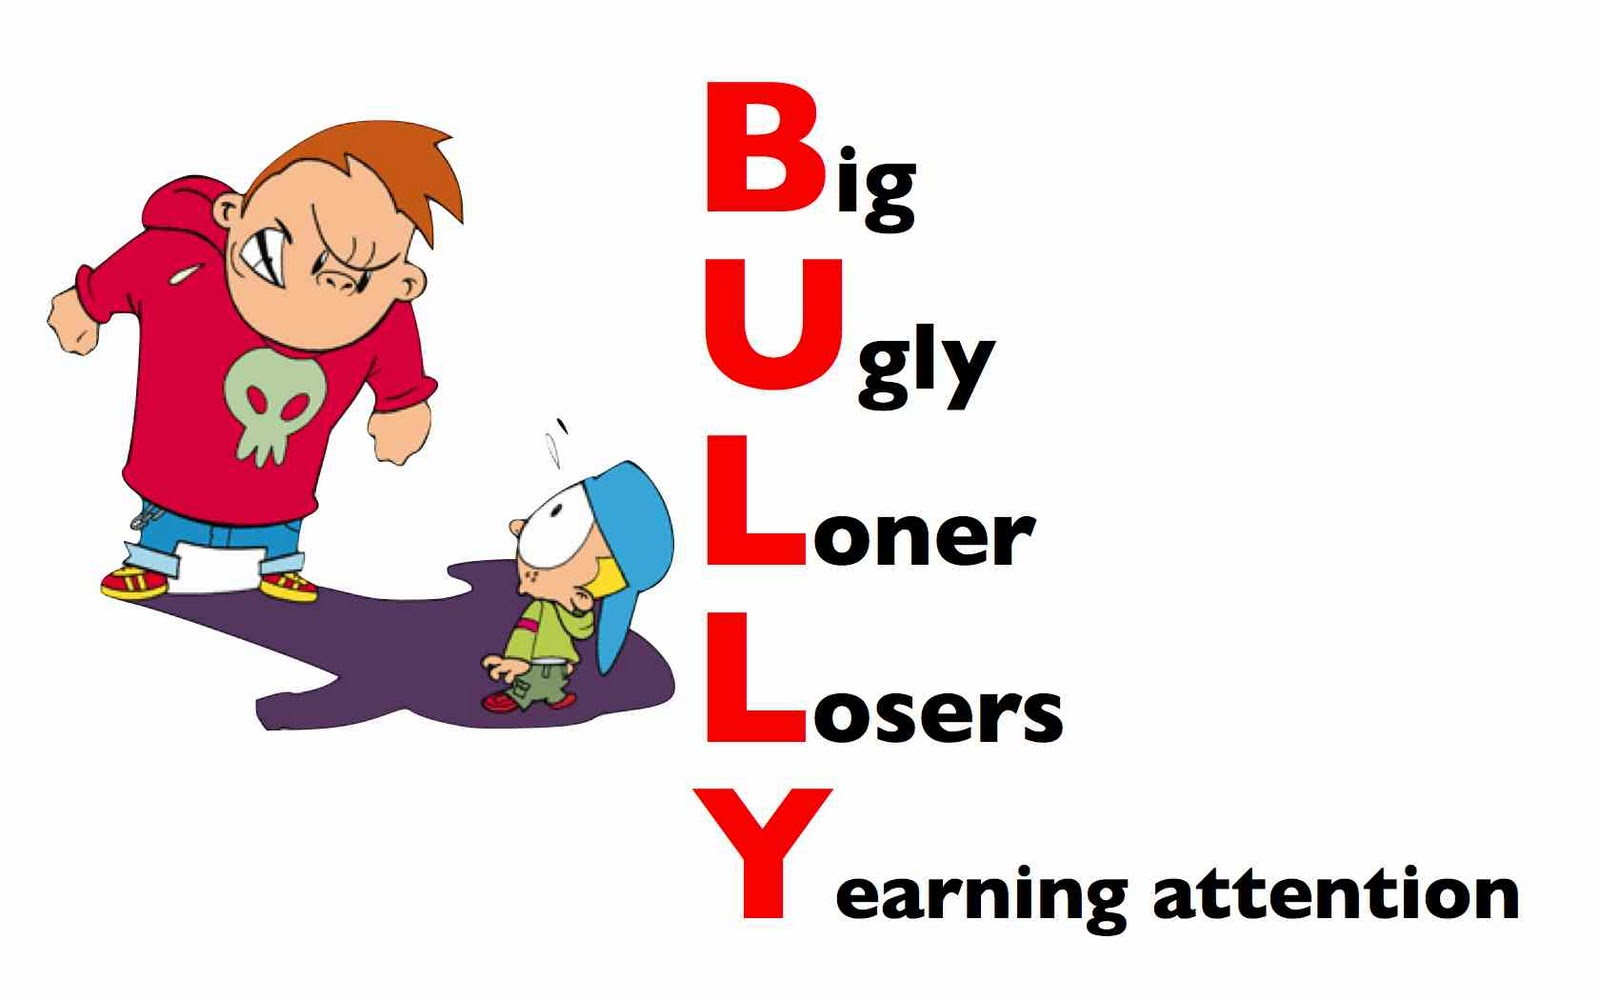 Stop Bullying Quotes Top 5 Tips For Beating Bullies How To Make Them Stop  View